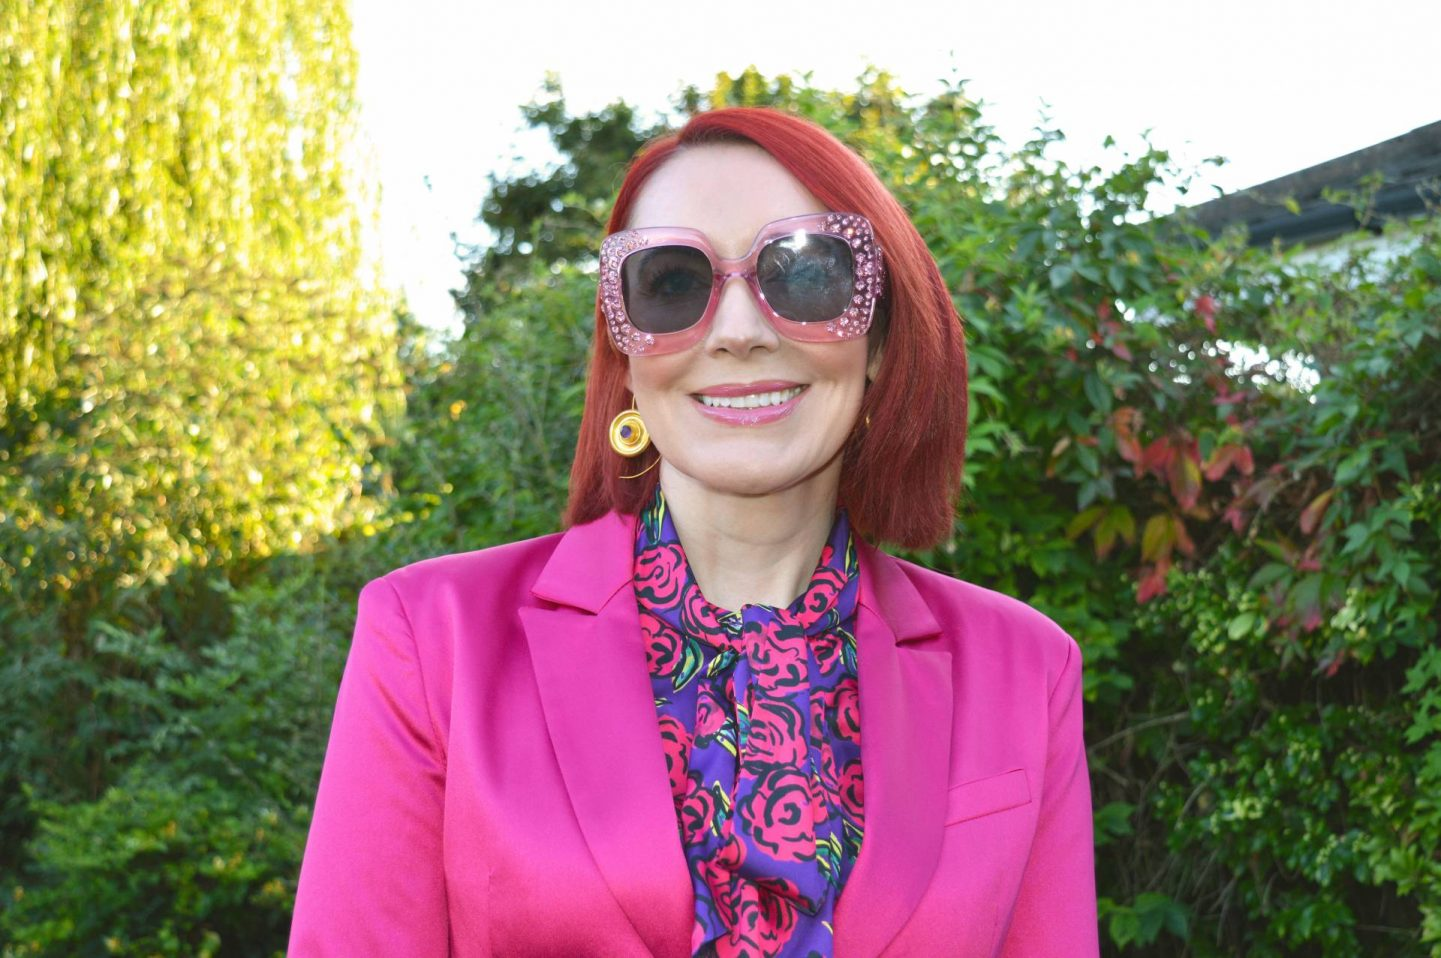 Pretty in Pink - September's Style Not Age, Asos hot pink belted jacket, Asos pink oversized sunglasses, Hawes & Curtis blouse, Ottoman Hands gold disc earrings